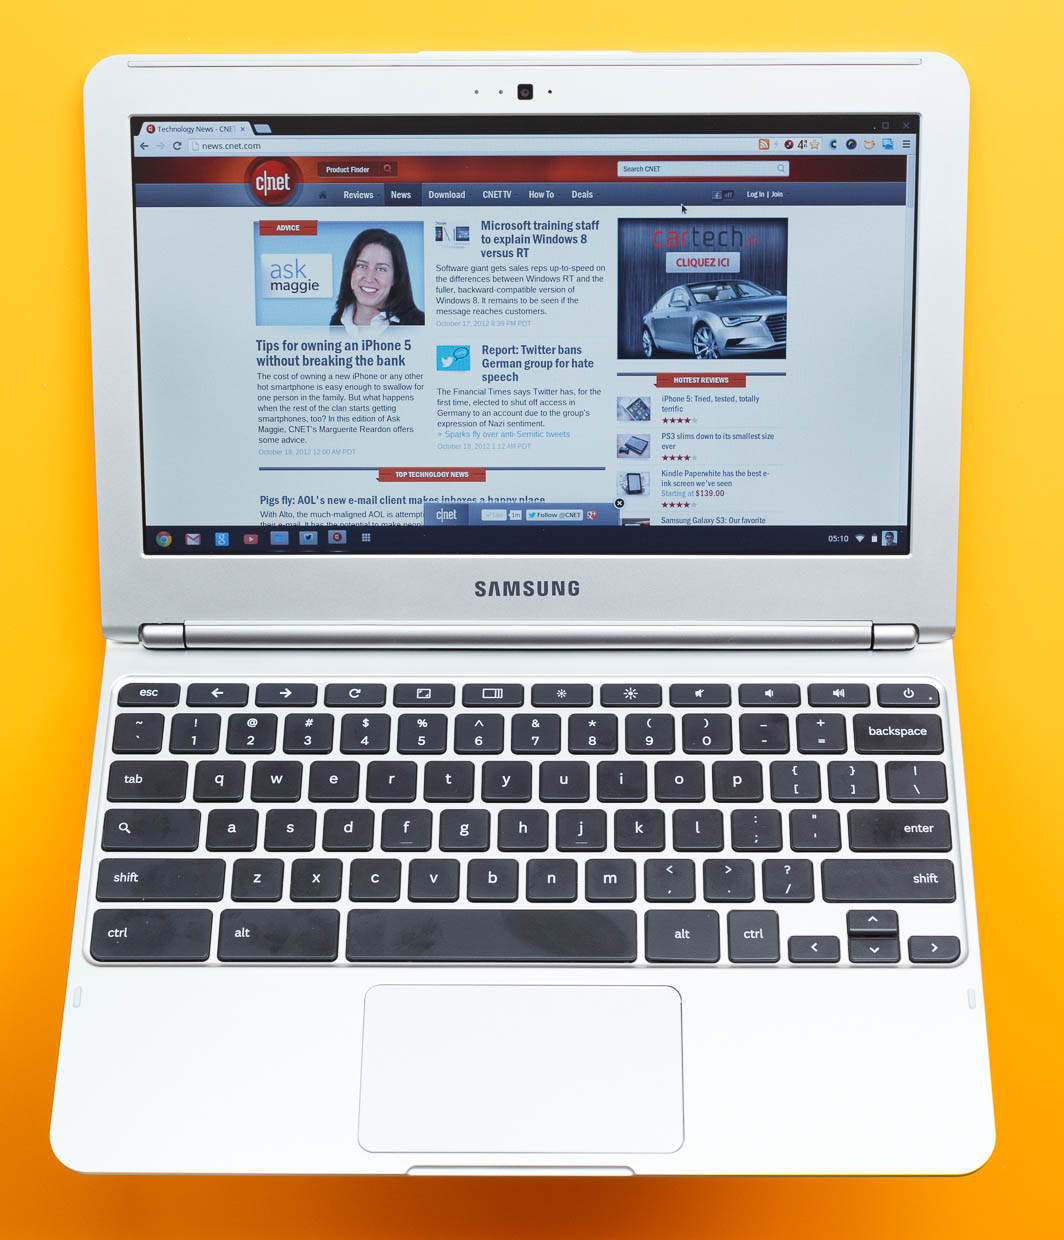 The Samsung Chromebook features an 11.6-inch matte screen.